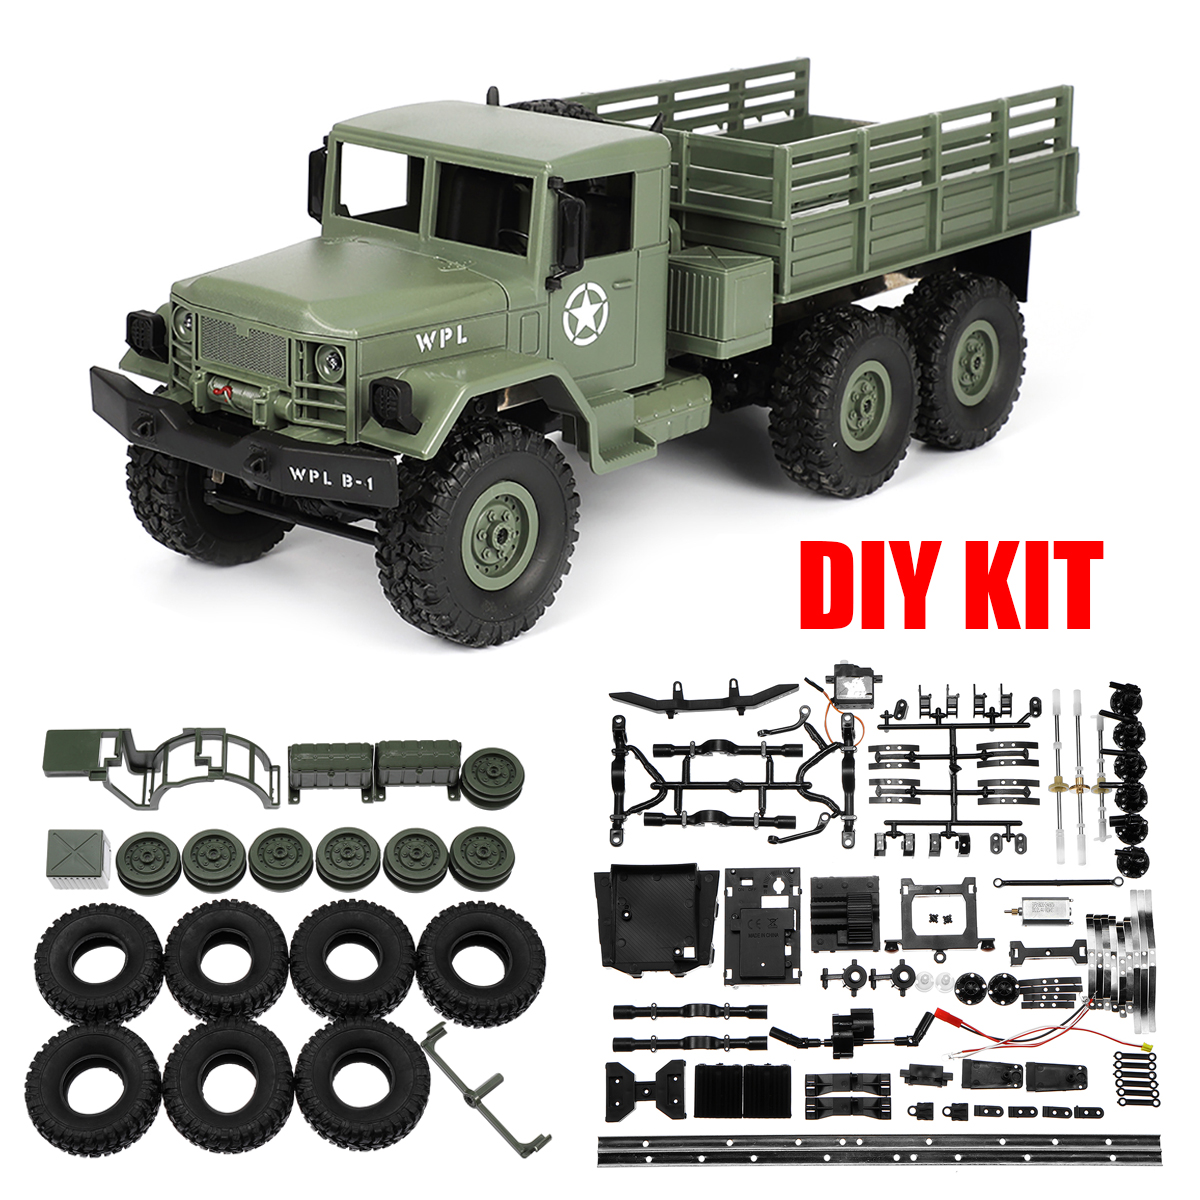 WPL B-16 1:16 2.4G 6WD Off-Road RC Military Truck Rock Crawler DIY Kit Toy Gift 16.14x5.31x6.30 Inch (Color: Green Yellow)